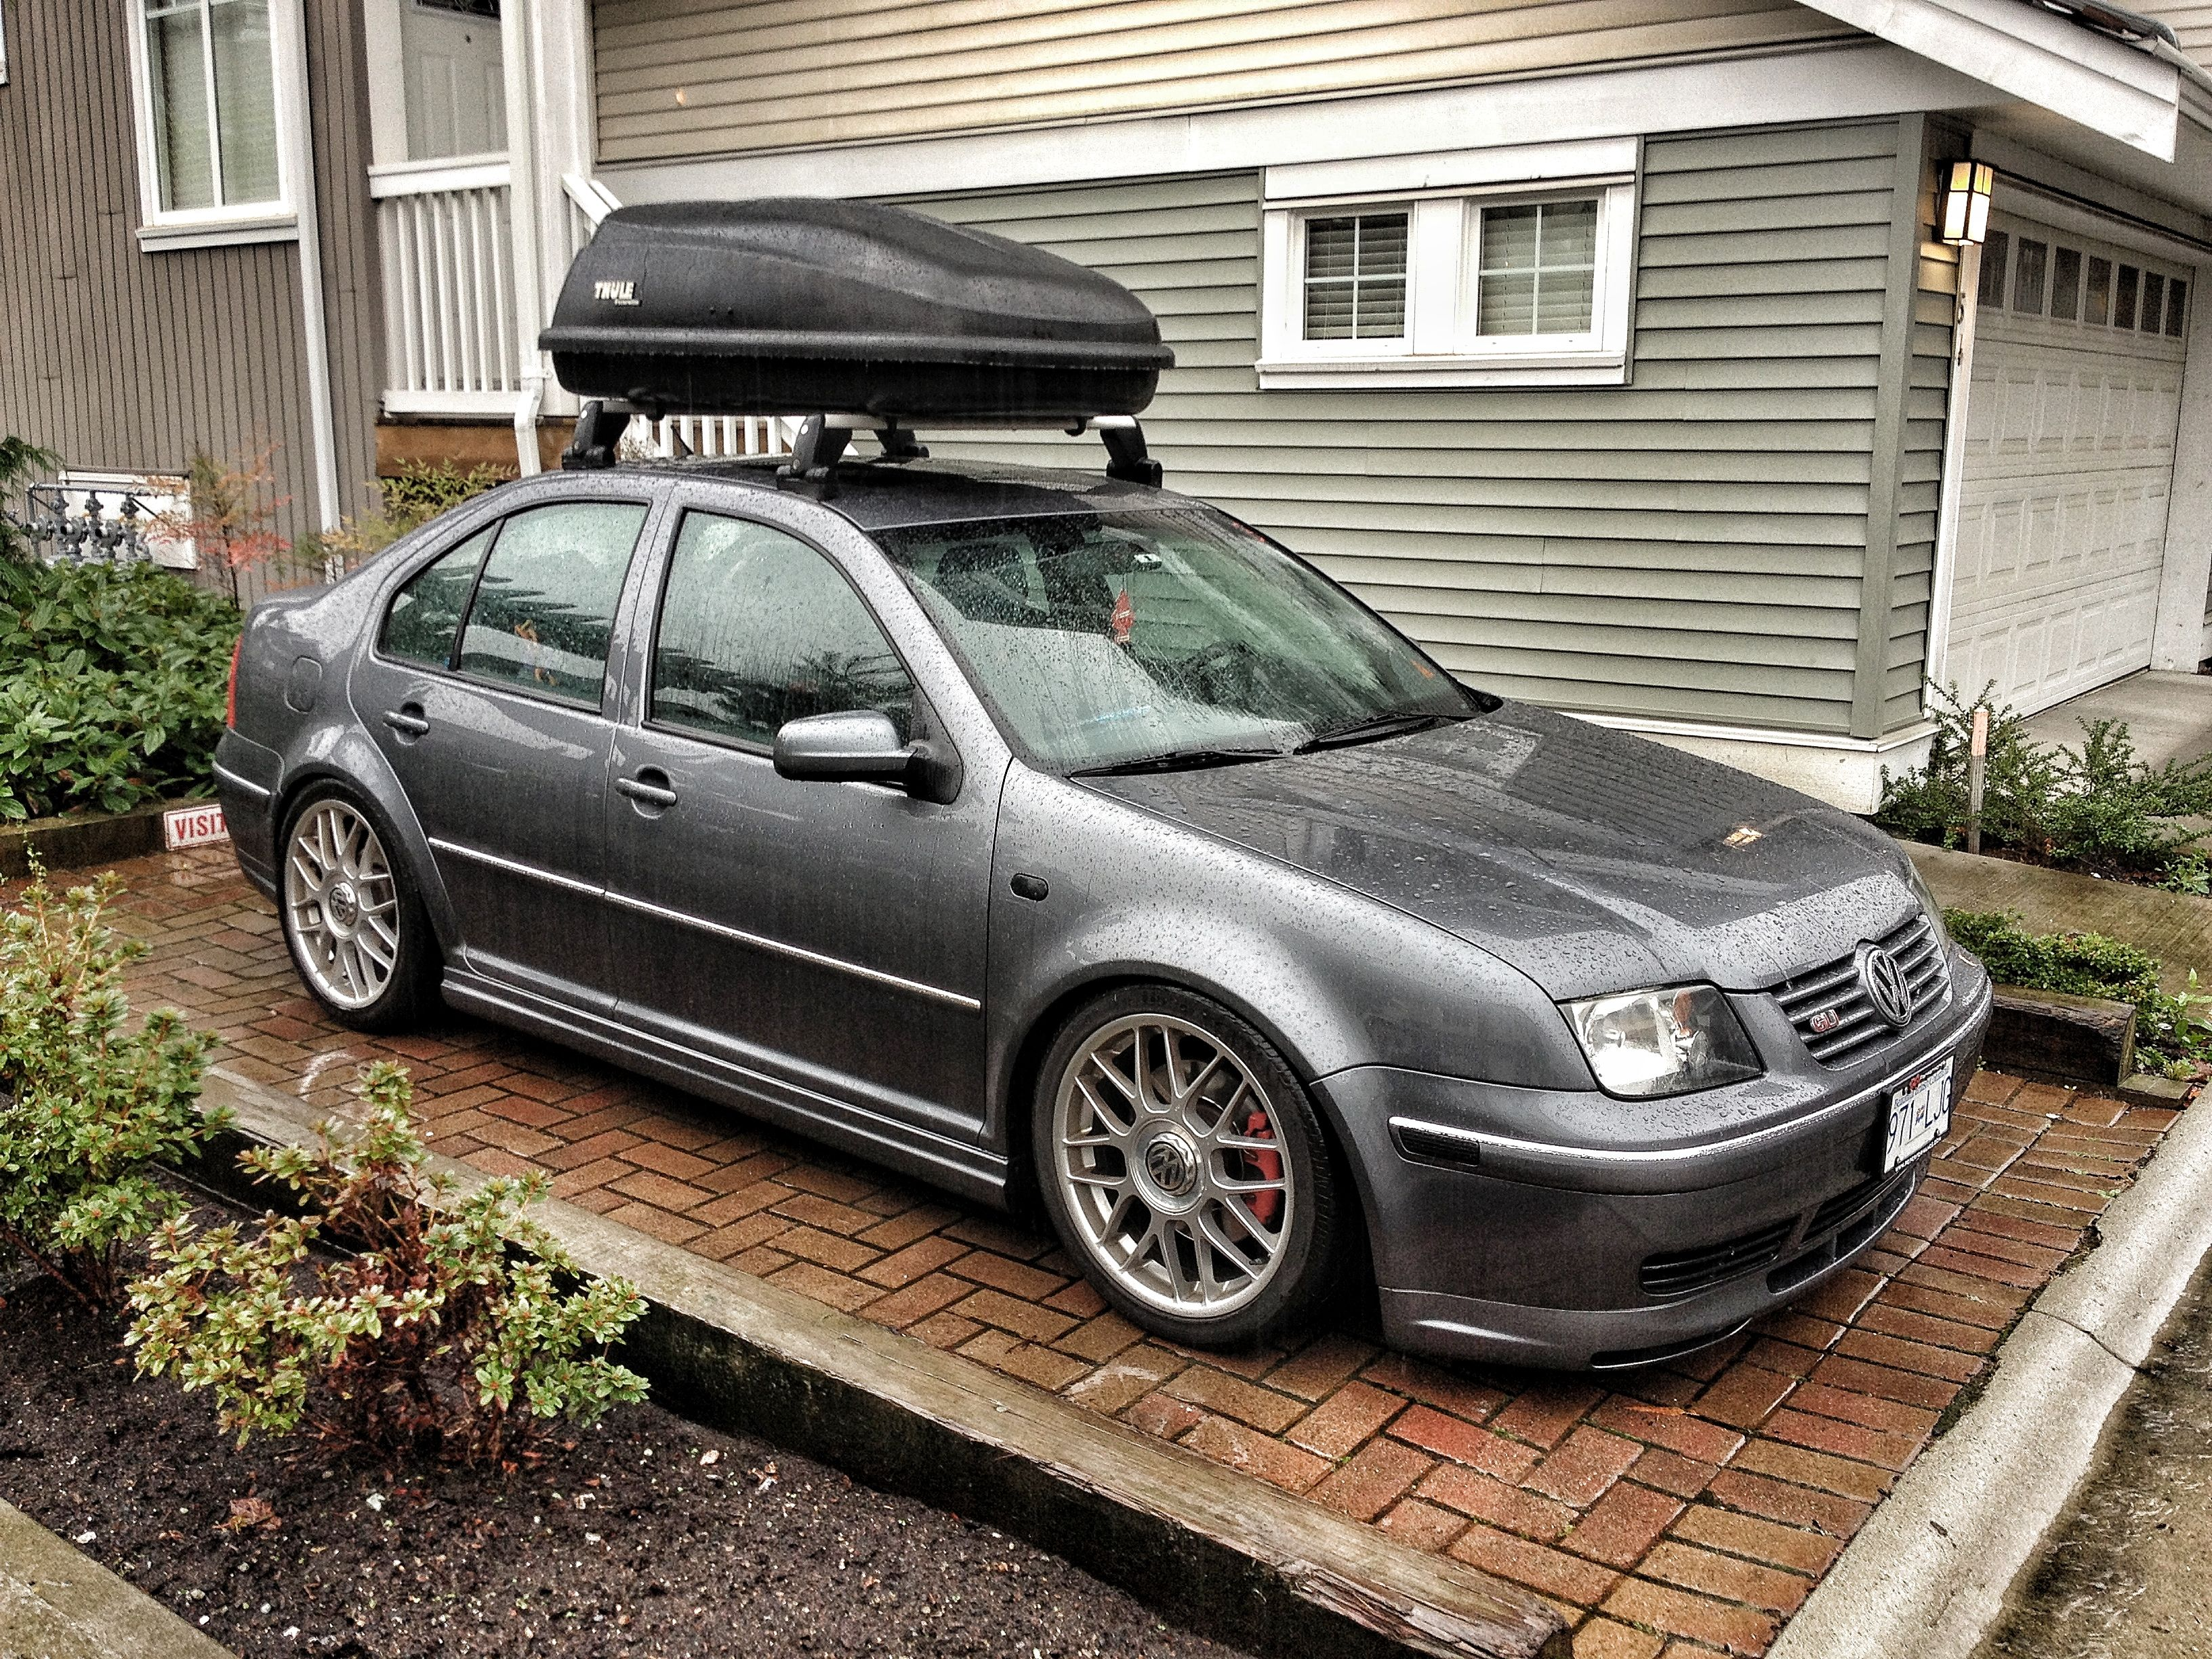 Vw gli mk4 jetta thule excursion carrier lowered gli jetta vw